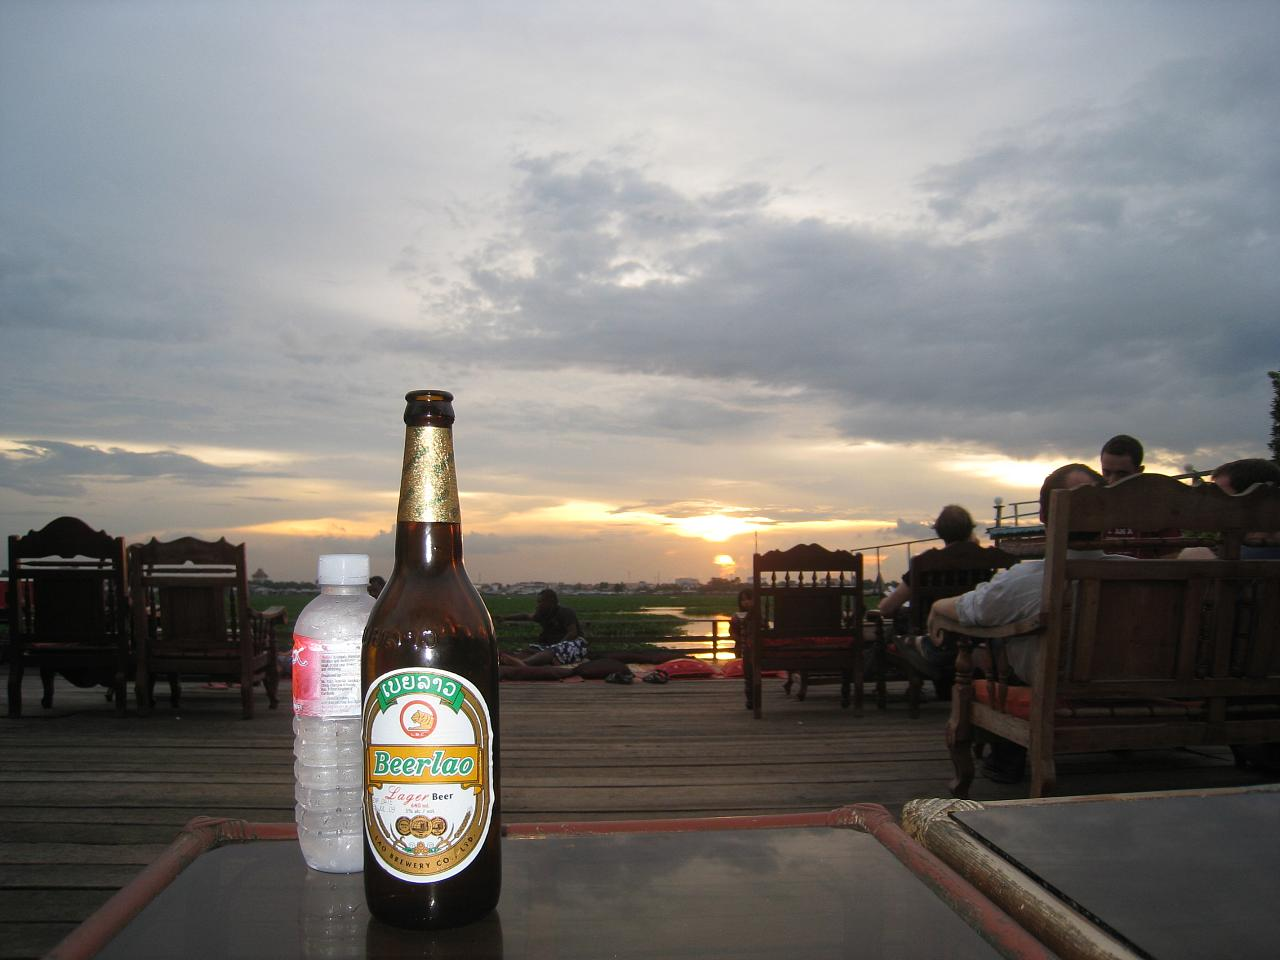 Phnom Penh's popular backpacker hangout is Boeung Kak Lake, where cheap accommodations are plentiful, and the sunset views go best with a cold beer.